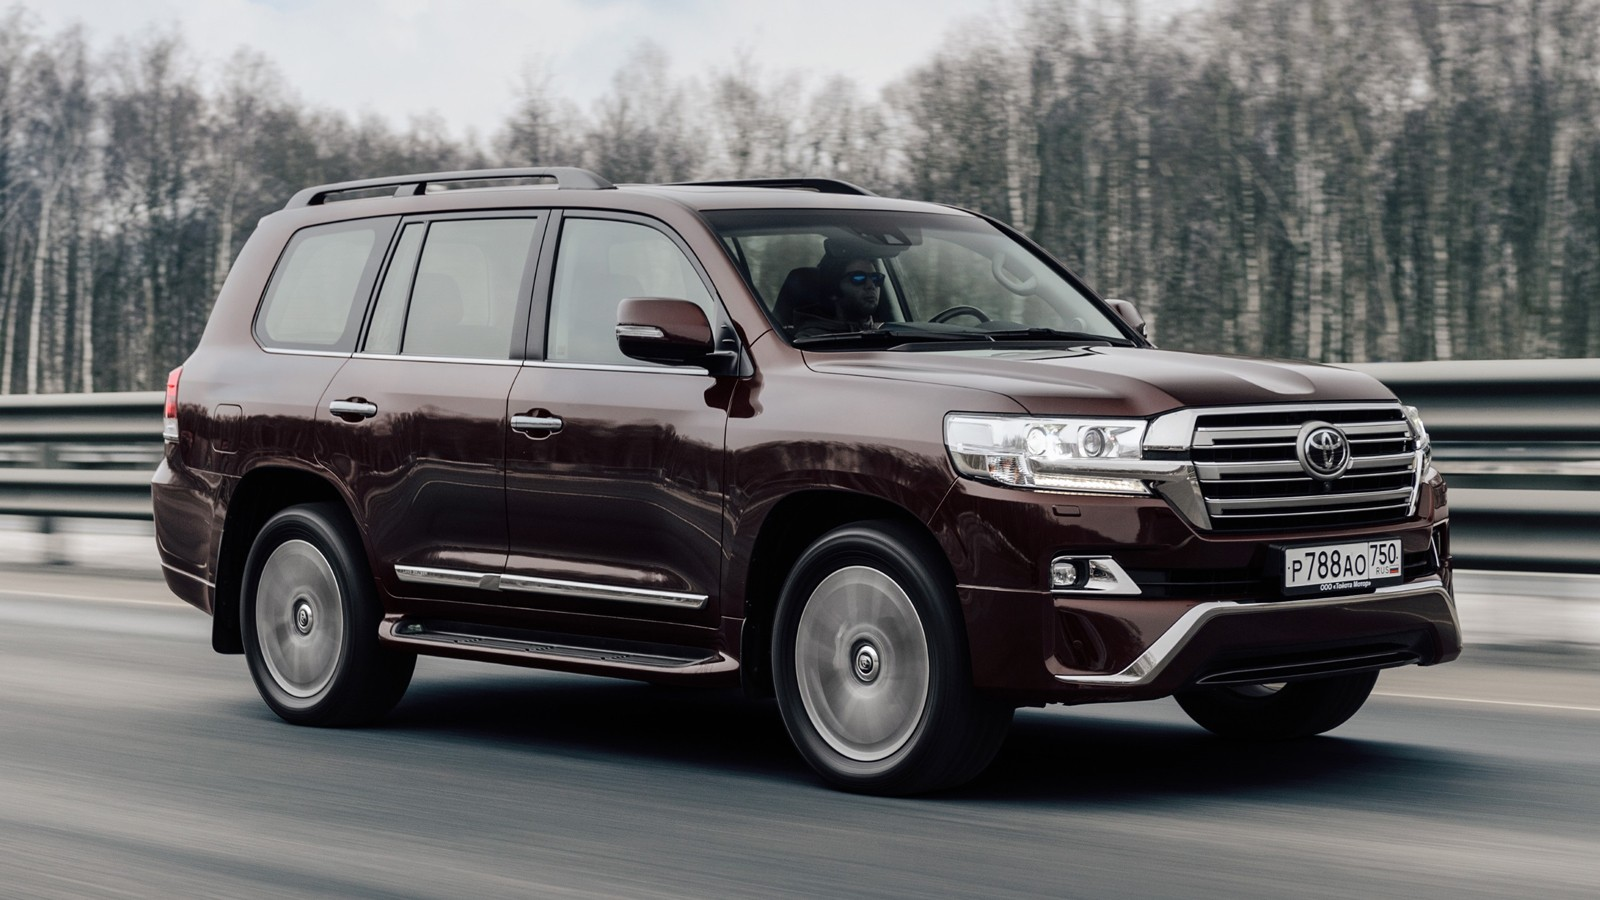 На фото: Toyota Land Cruiser 200